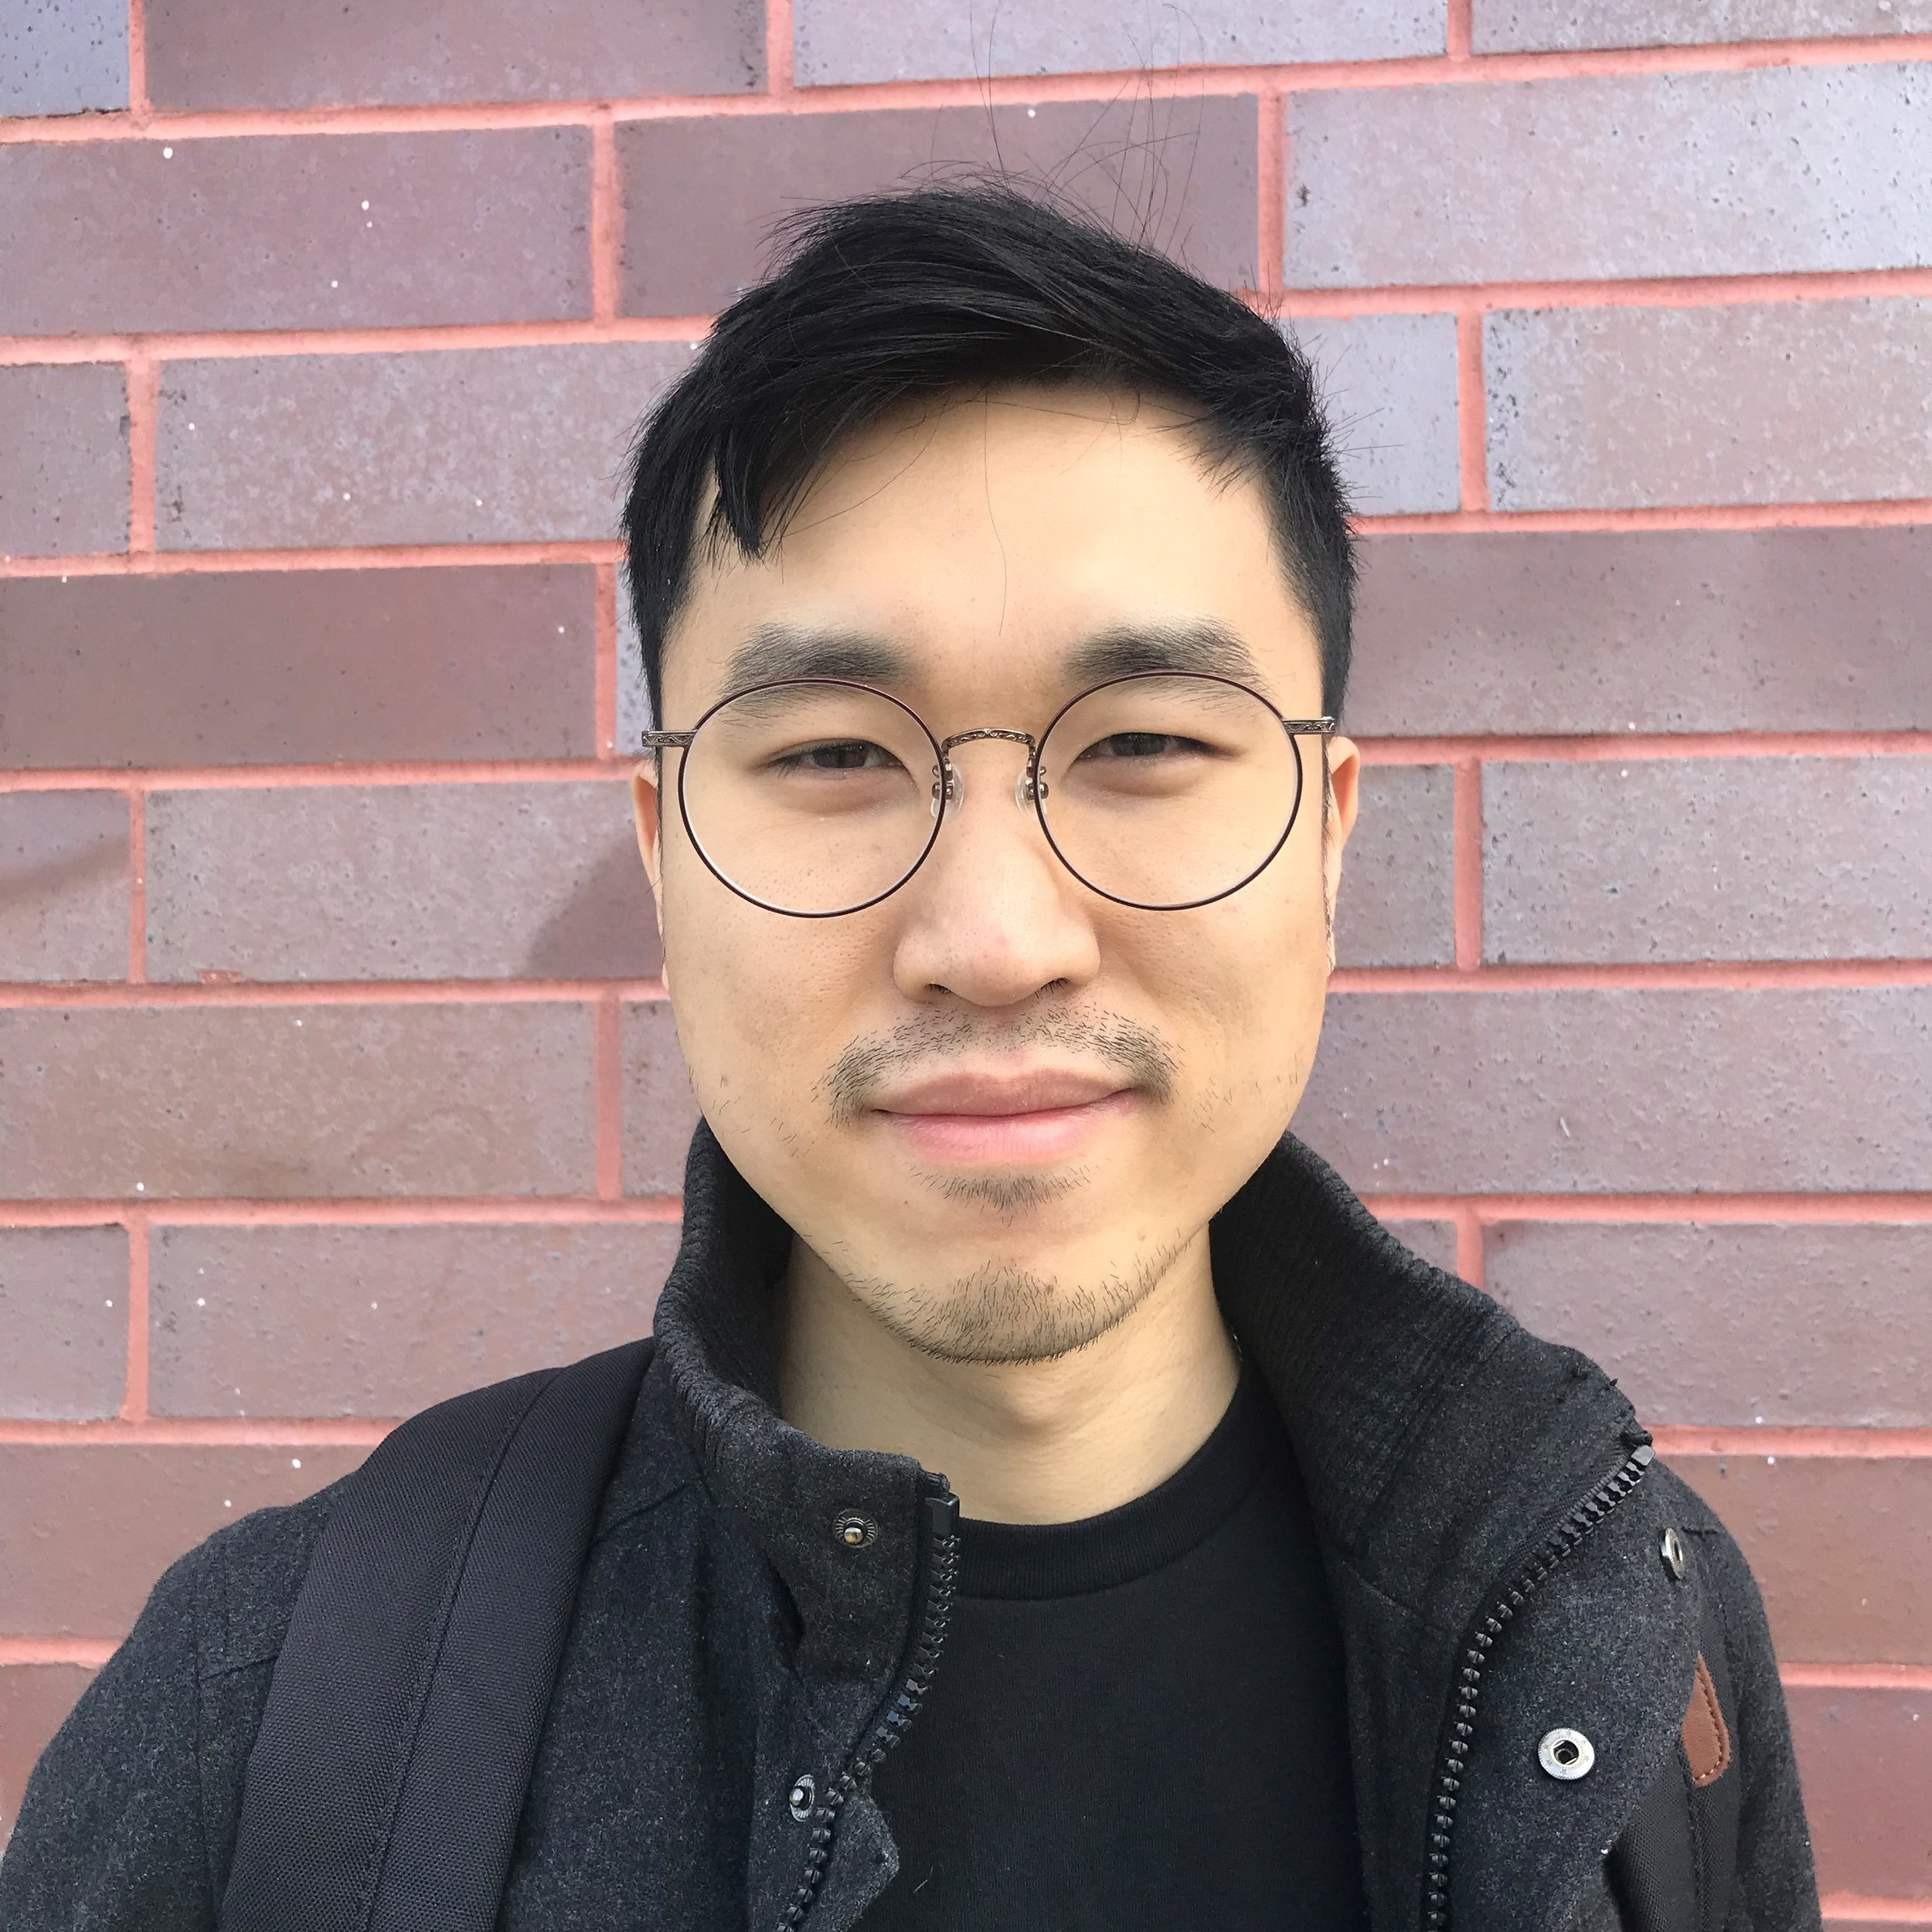 Robert Wong  Robert Wong is the iOS developer for the TestSharing team with previous experience in backend development. After graduating from Syracuse University in Computer Engineering, he worked as a backend developer for a FinTech company. He made the jump to become an iOS developer to combine his passion for creating impactful solutions for the food industry and his love for problem solving with code. Robert develops new features, and collaborates with the rest of the development team to define, design, and ship new features.